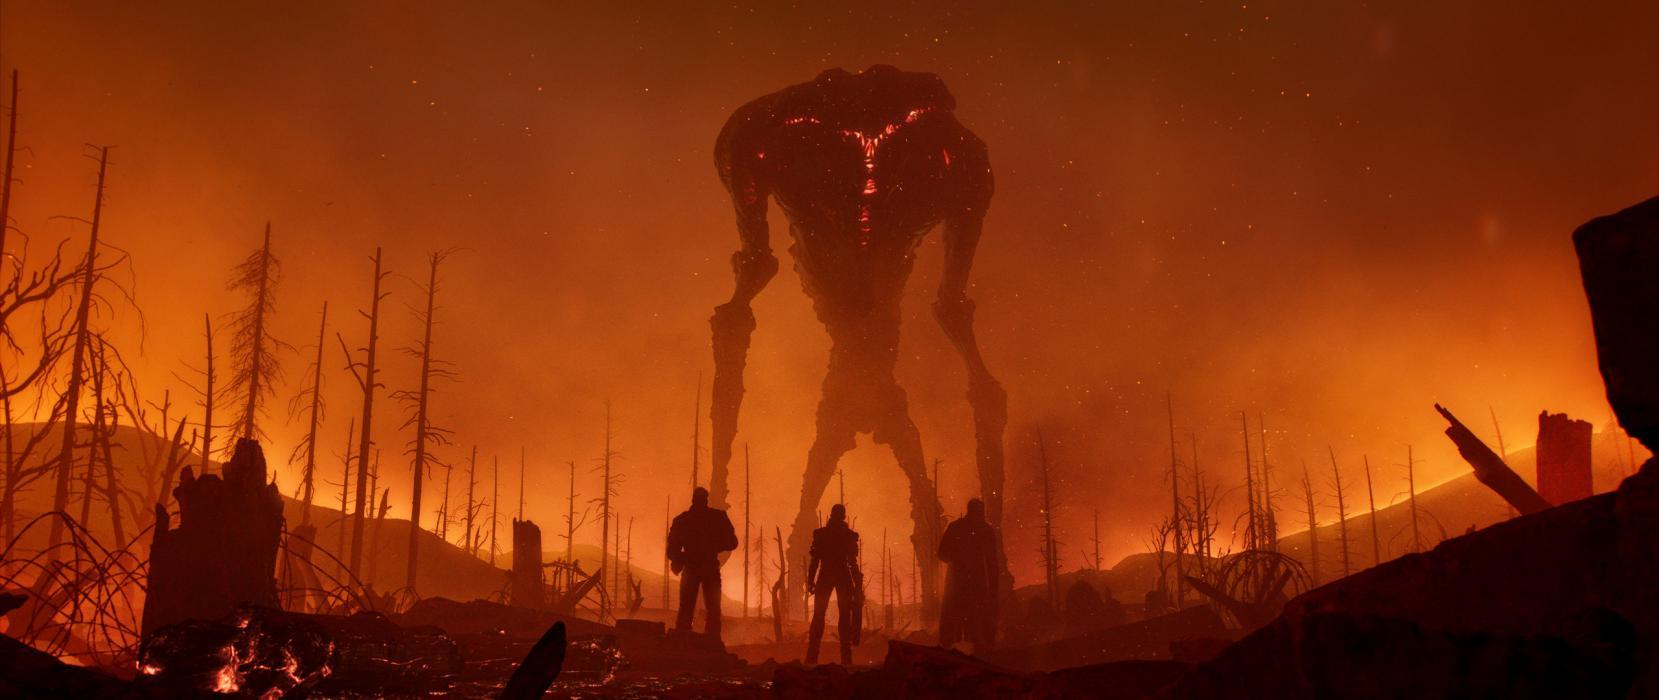 New Outriders Gameplay Trailer Showcases First Look at Upcoming RPG Shooter